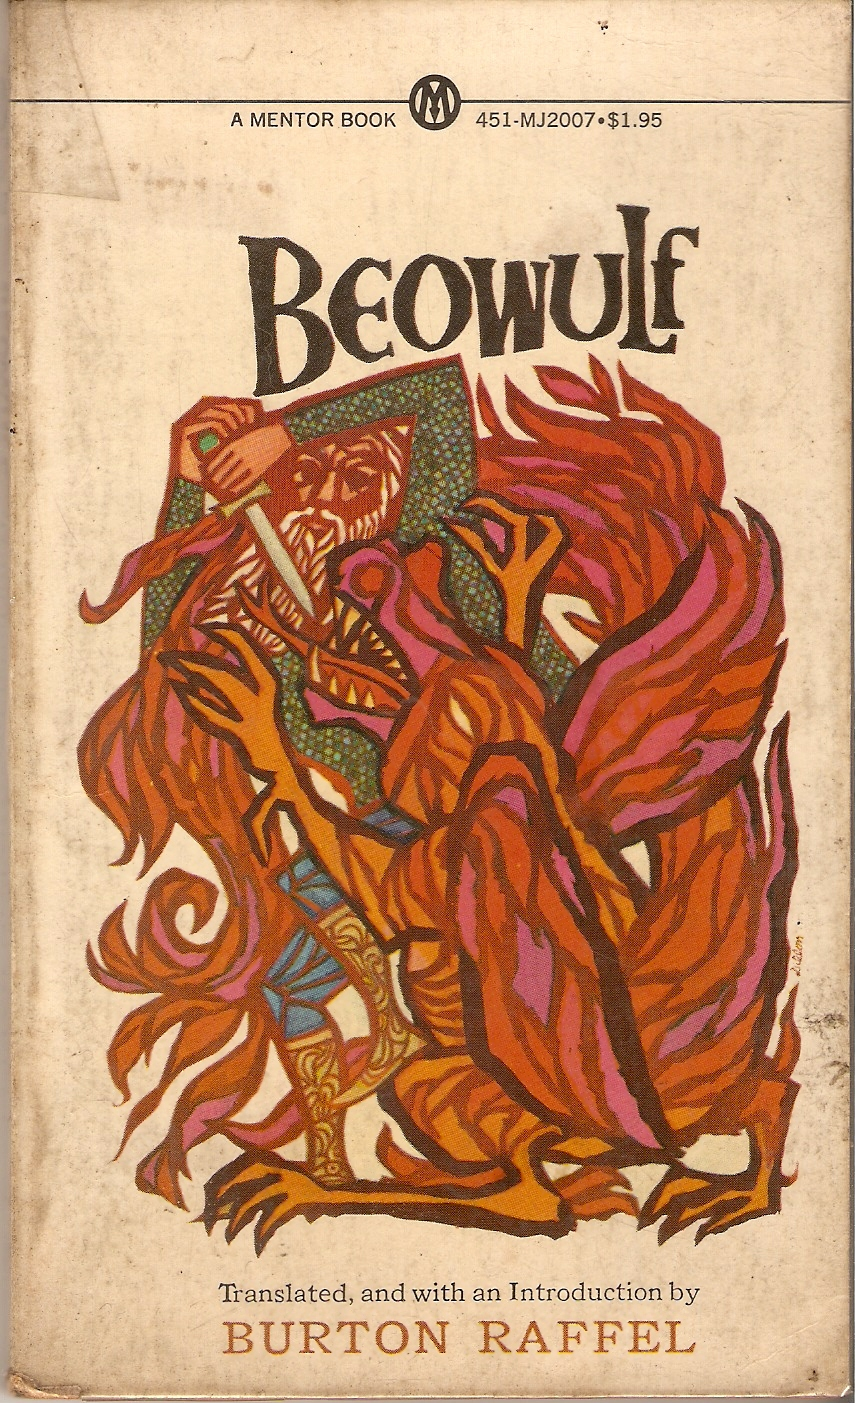 an analysis of beowulf a very complex piece of literature Beowulf is a very complex piece of literature, or perhaps i just have a small mind, never the less it was difficult for me to understand it was originally a folk-lore, passed verbally through the years, therefore it was told in a manor that could be easily remembered and retold.